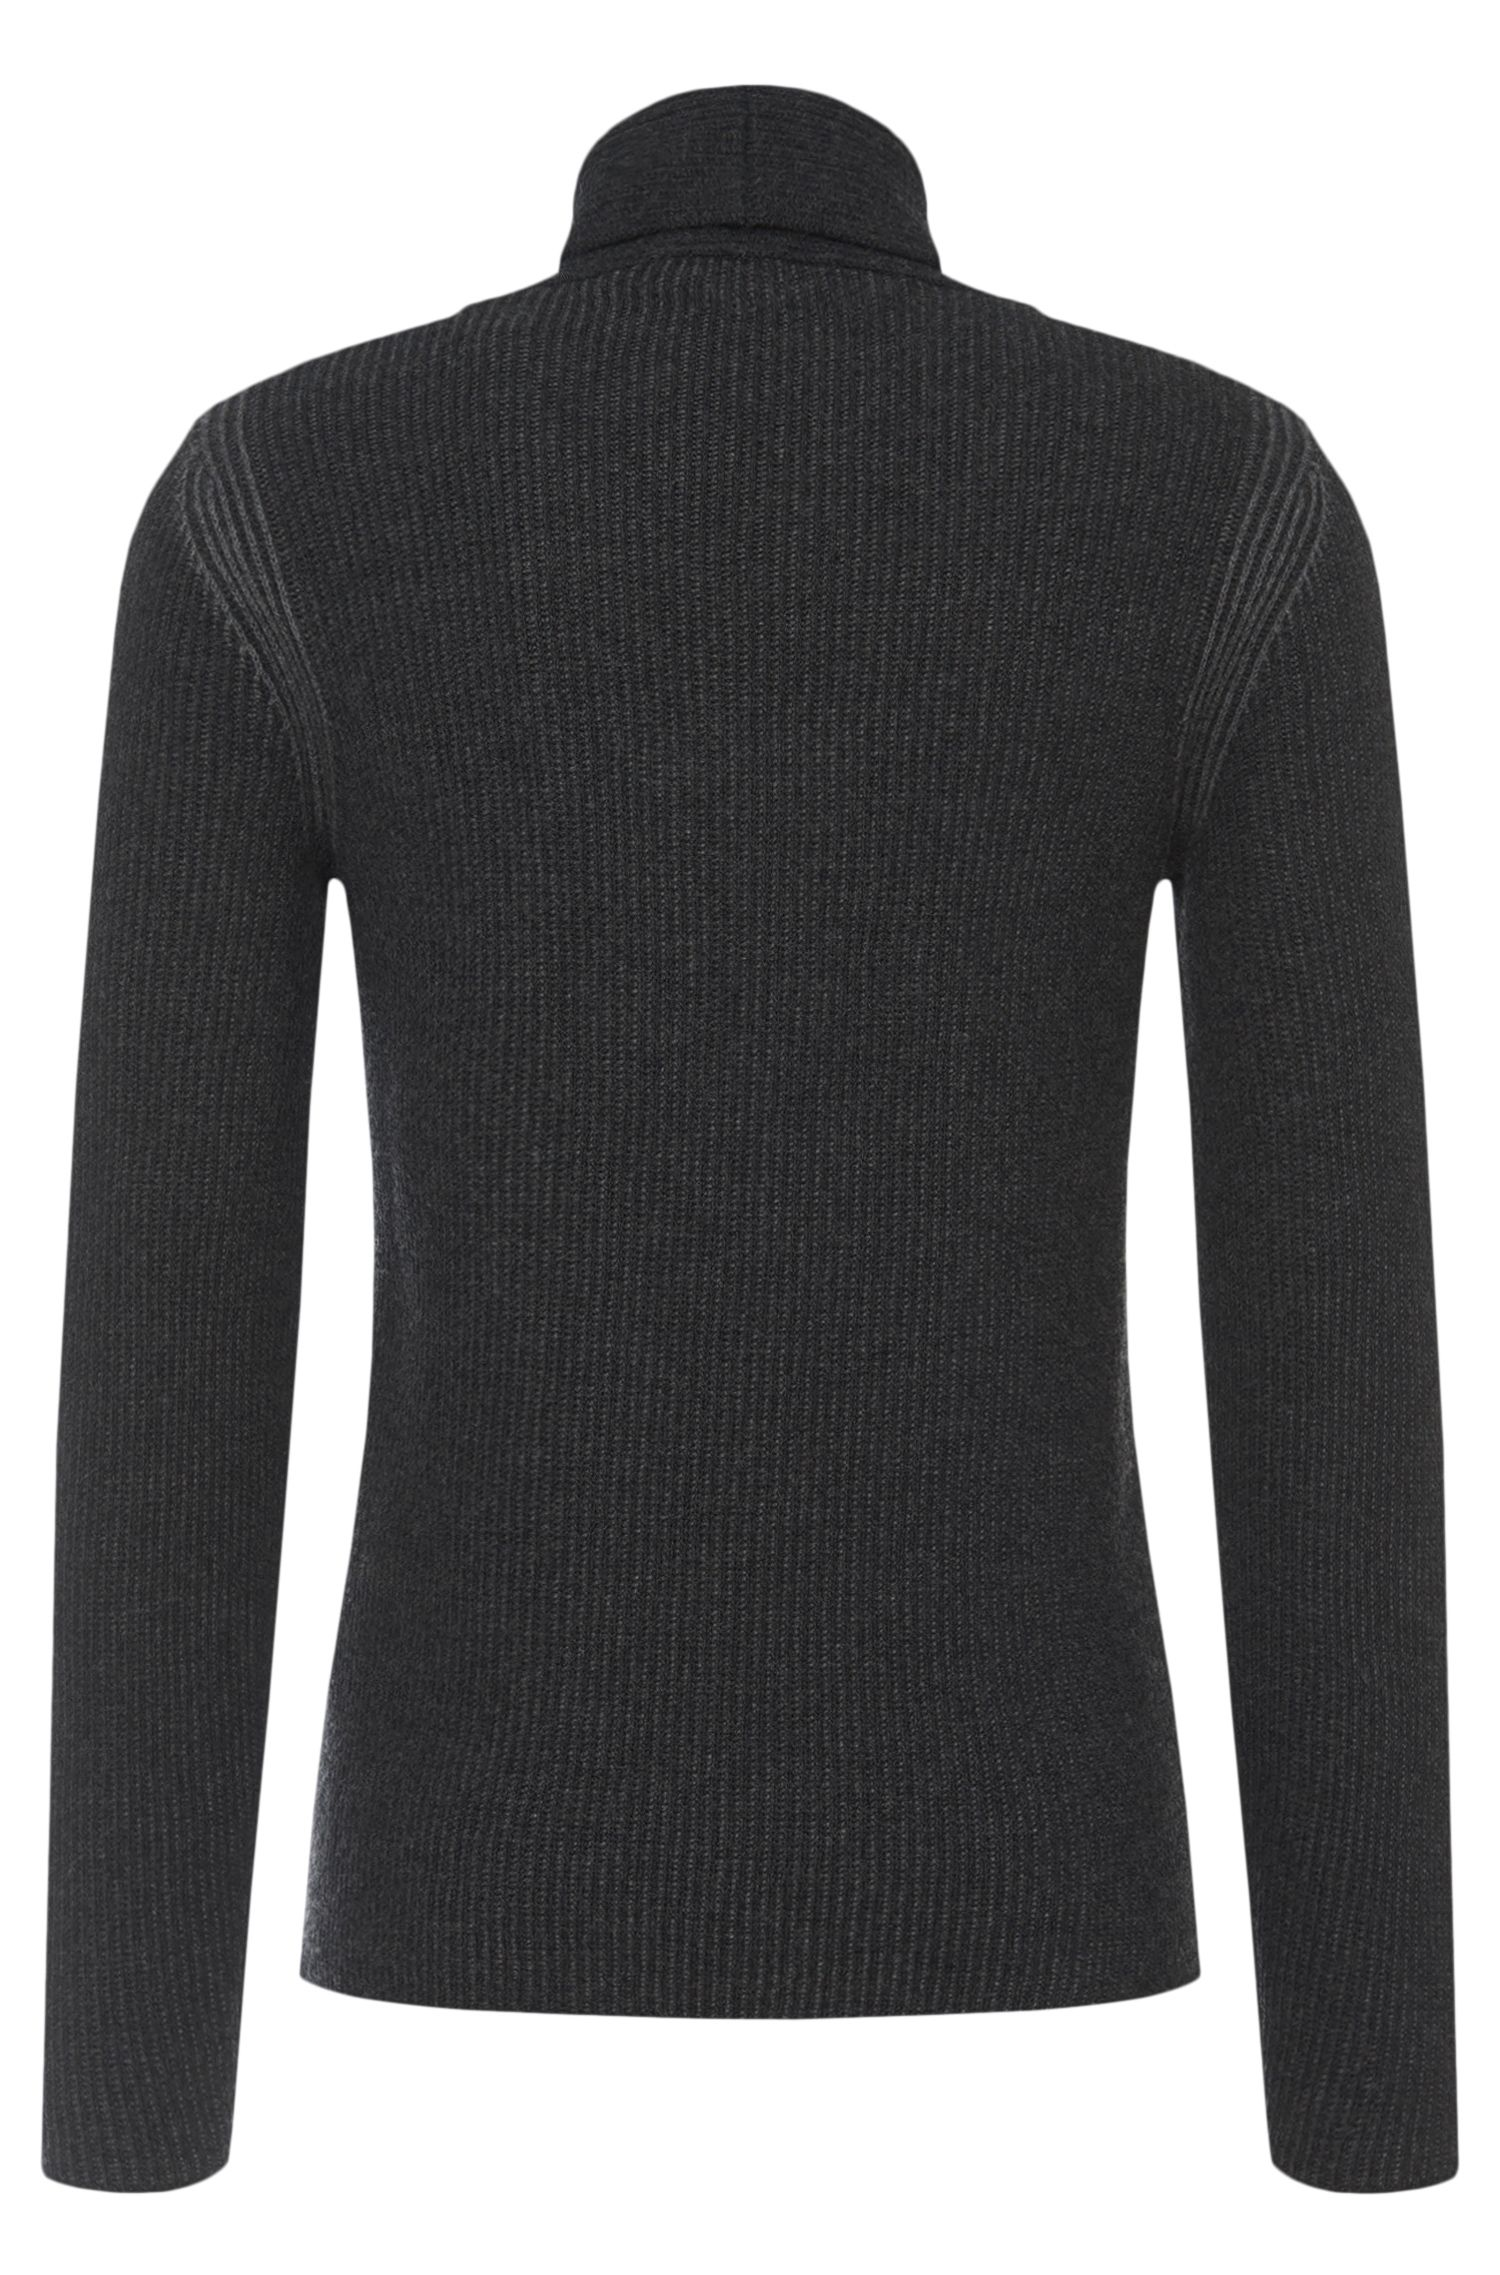 Pull Slim Fit en pure laine vierge à col rabattable : « Berno »